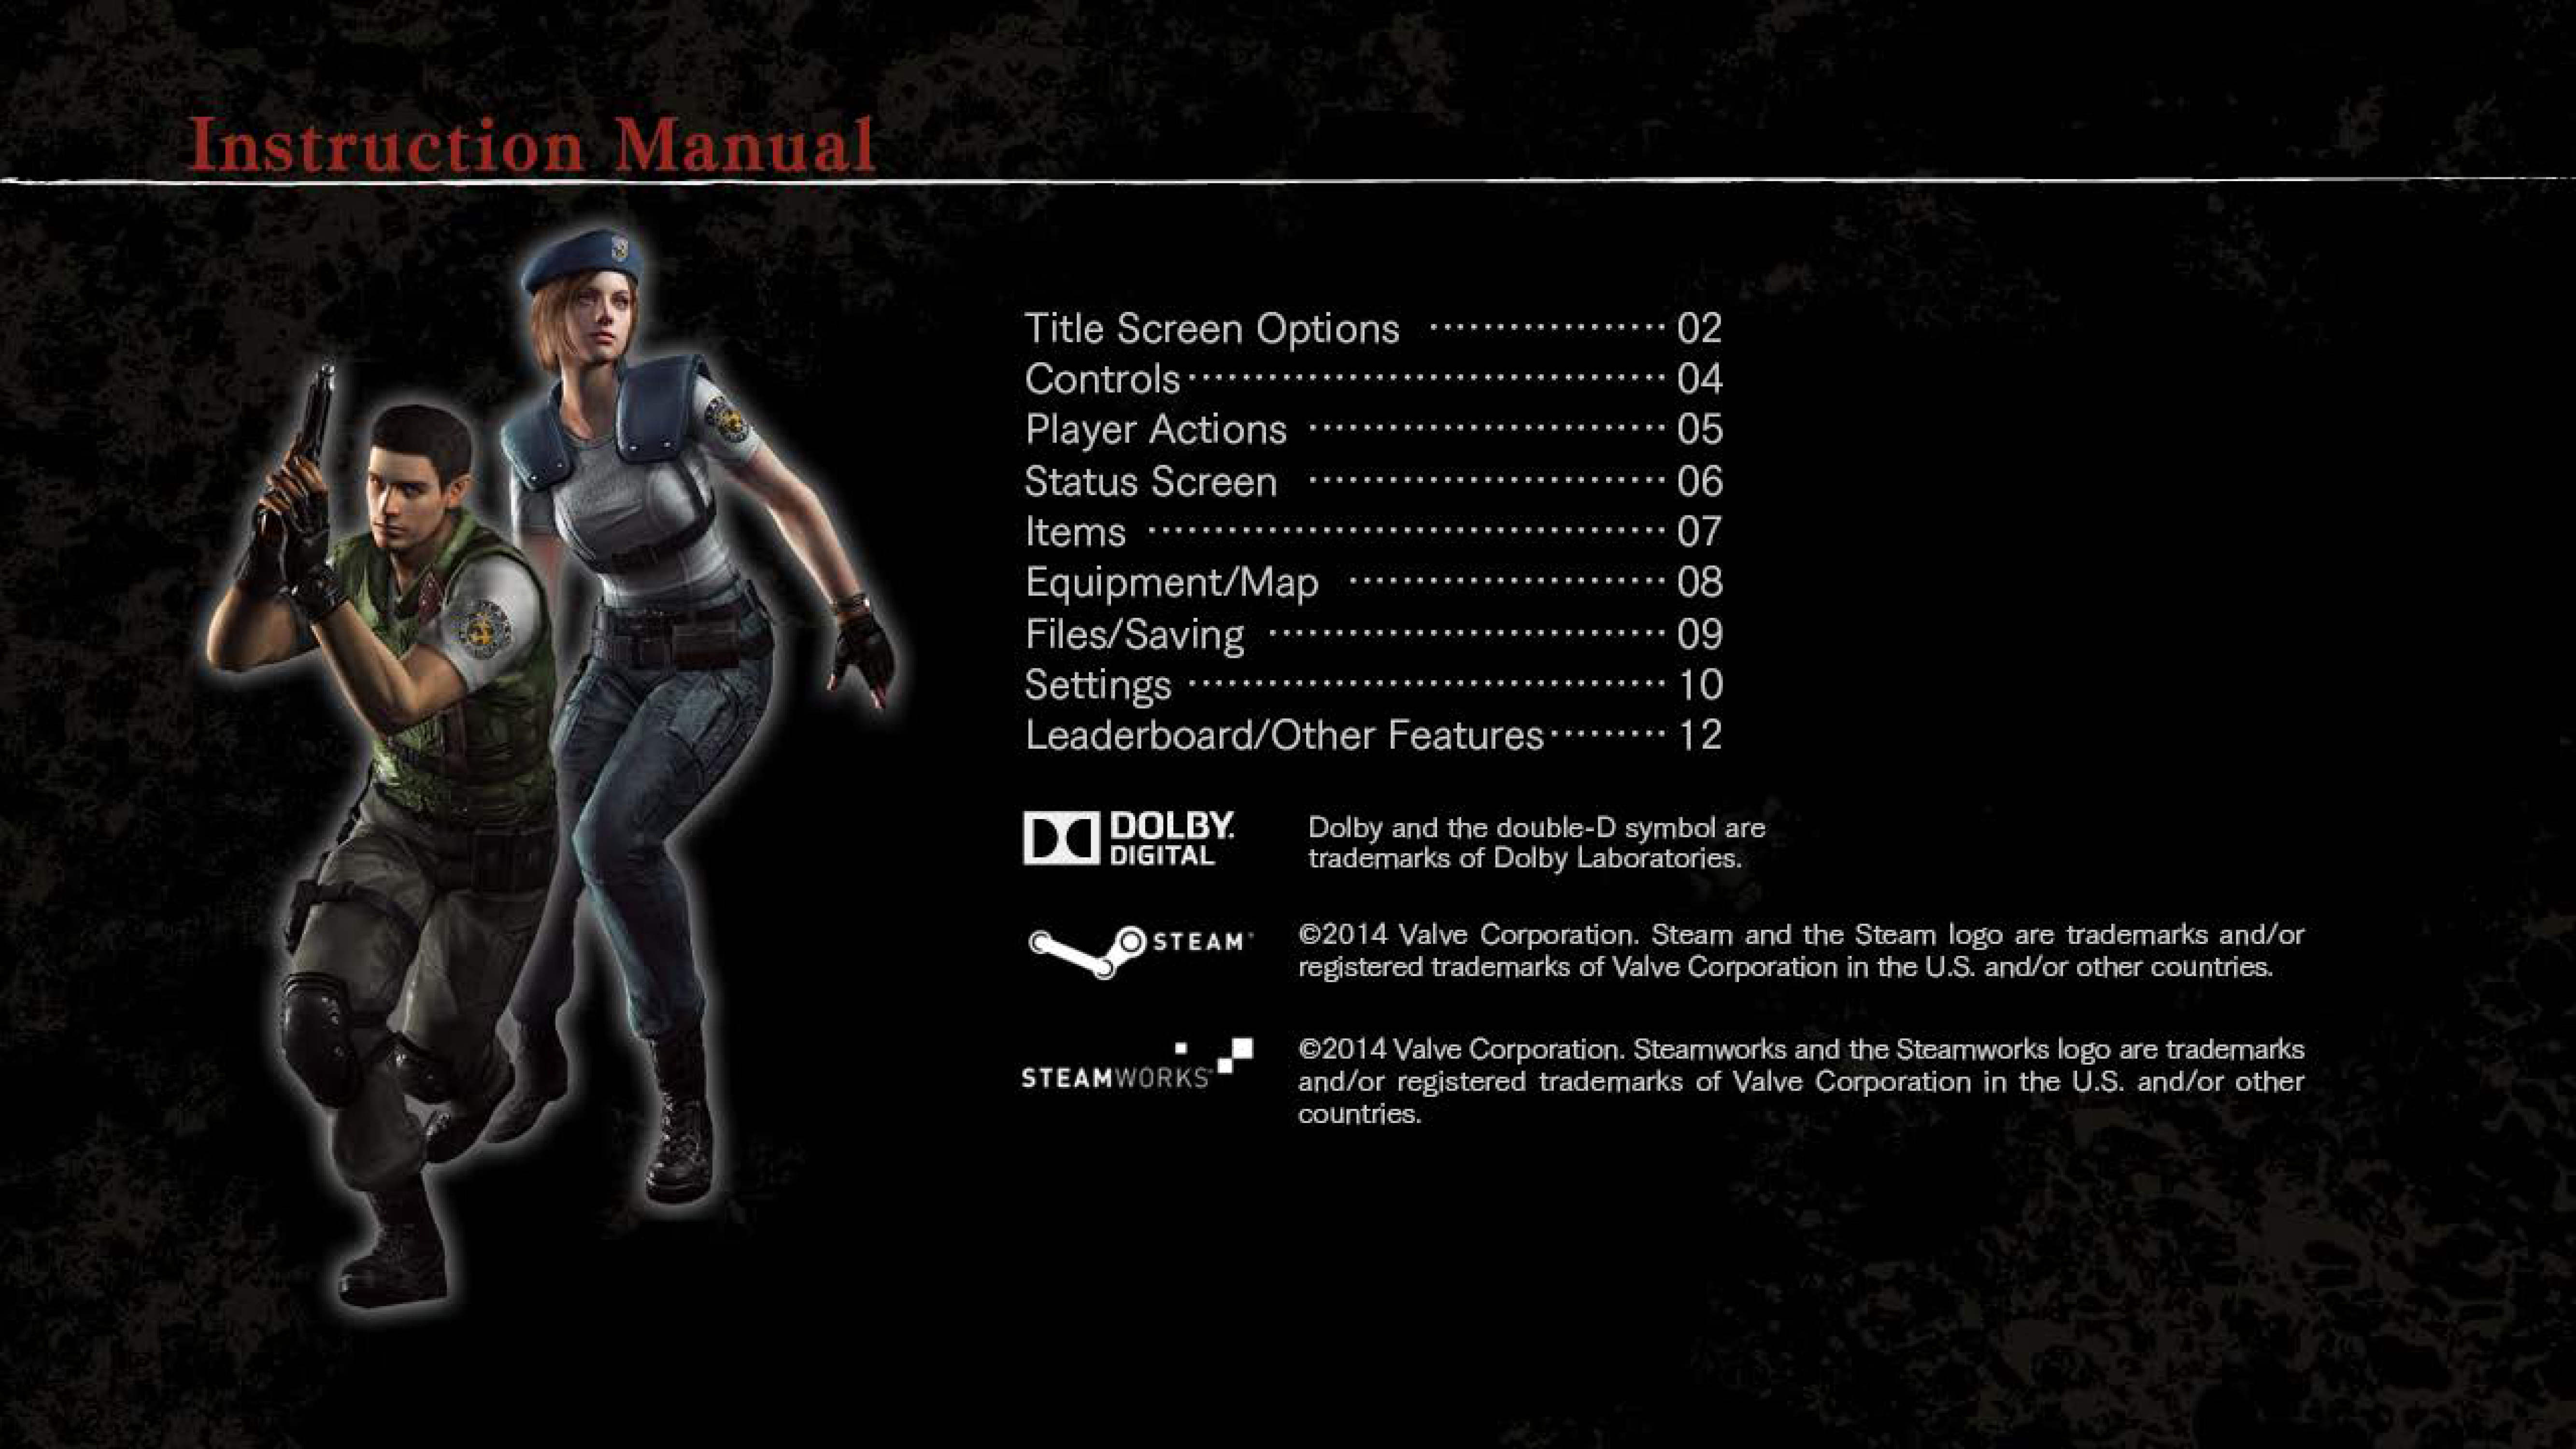 Resident Evil: HD Remaster manual